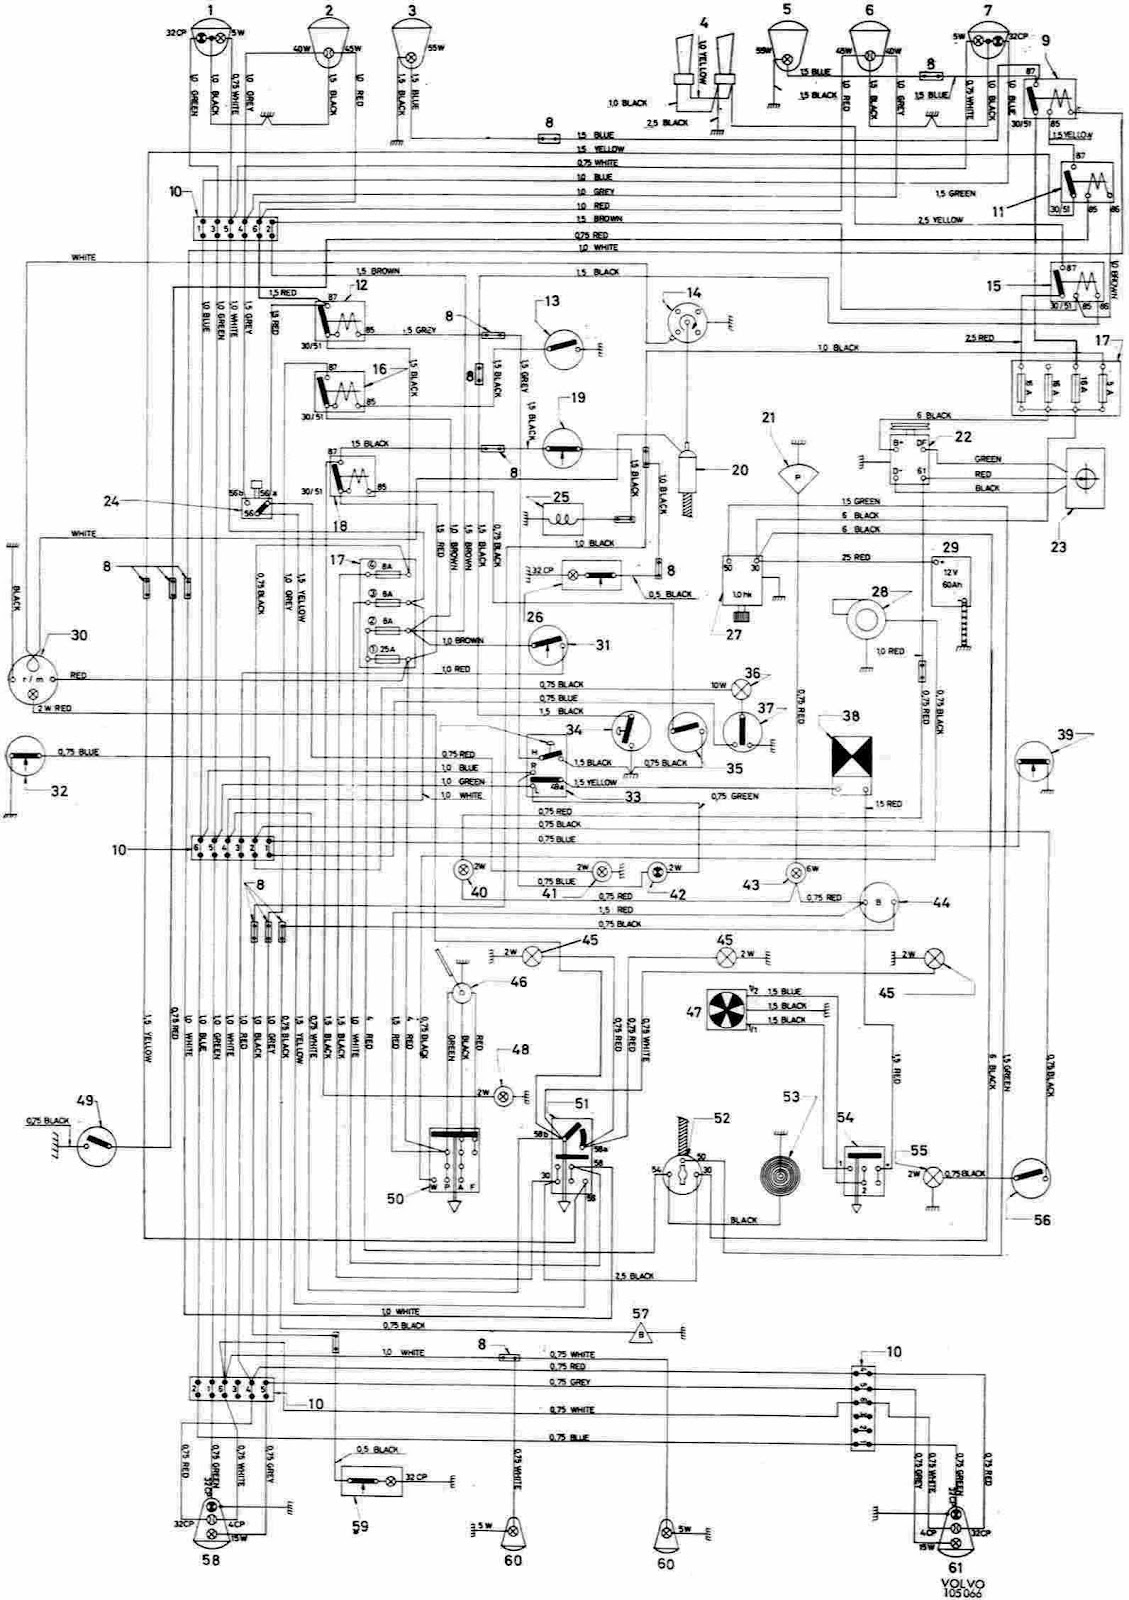 1997 volvo wiring diagrams wiring diagram2000 volvo wiring diagram wiring diagram sheet2001 volvo wiring diagram wiring diagram schema 2000 volvo s40